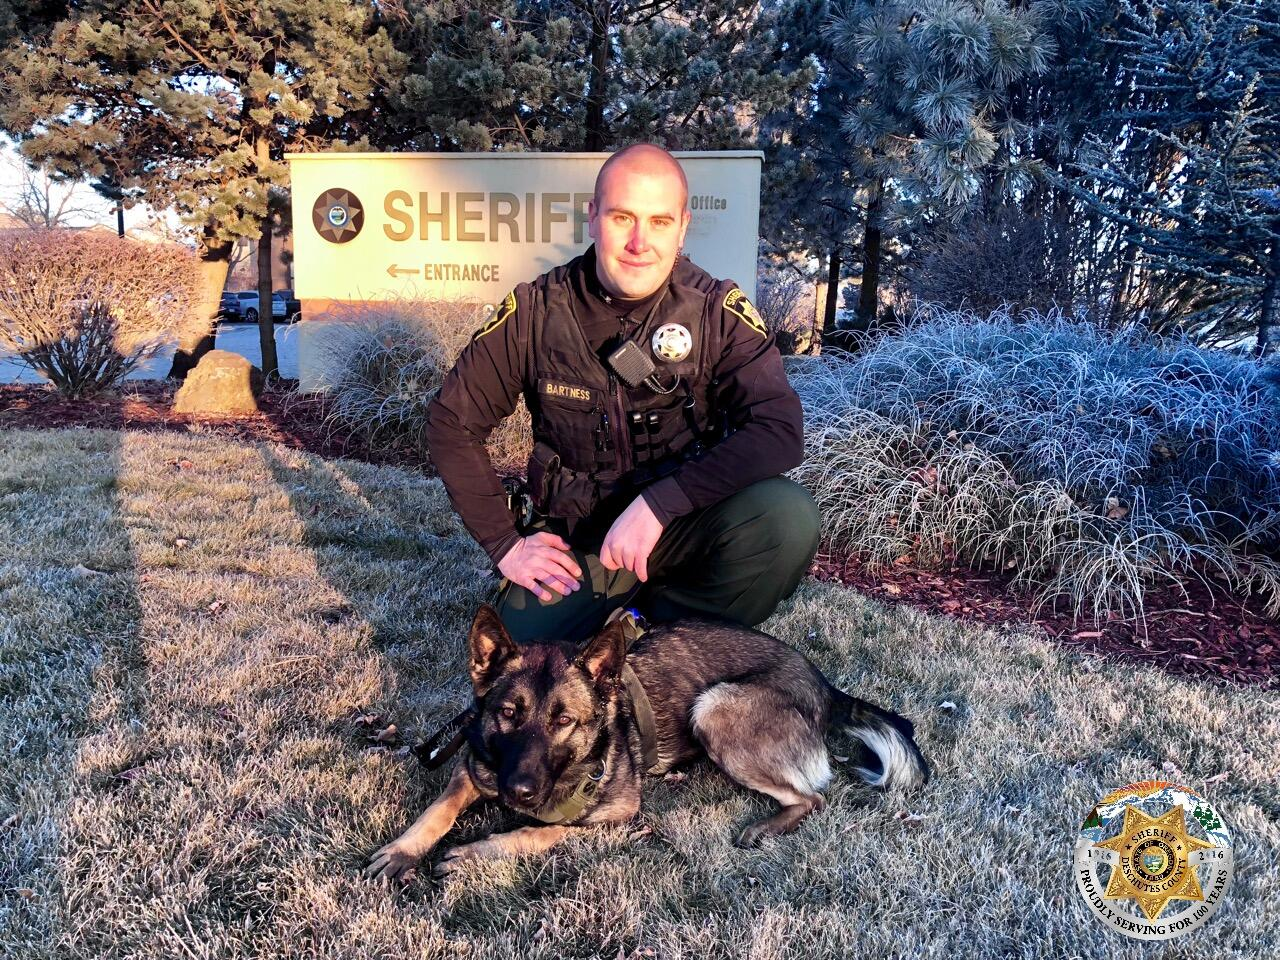 DCSO'S NEWEST K9 'MASA' HITS THE STREETS (Deschutes County